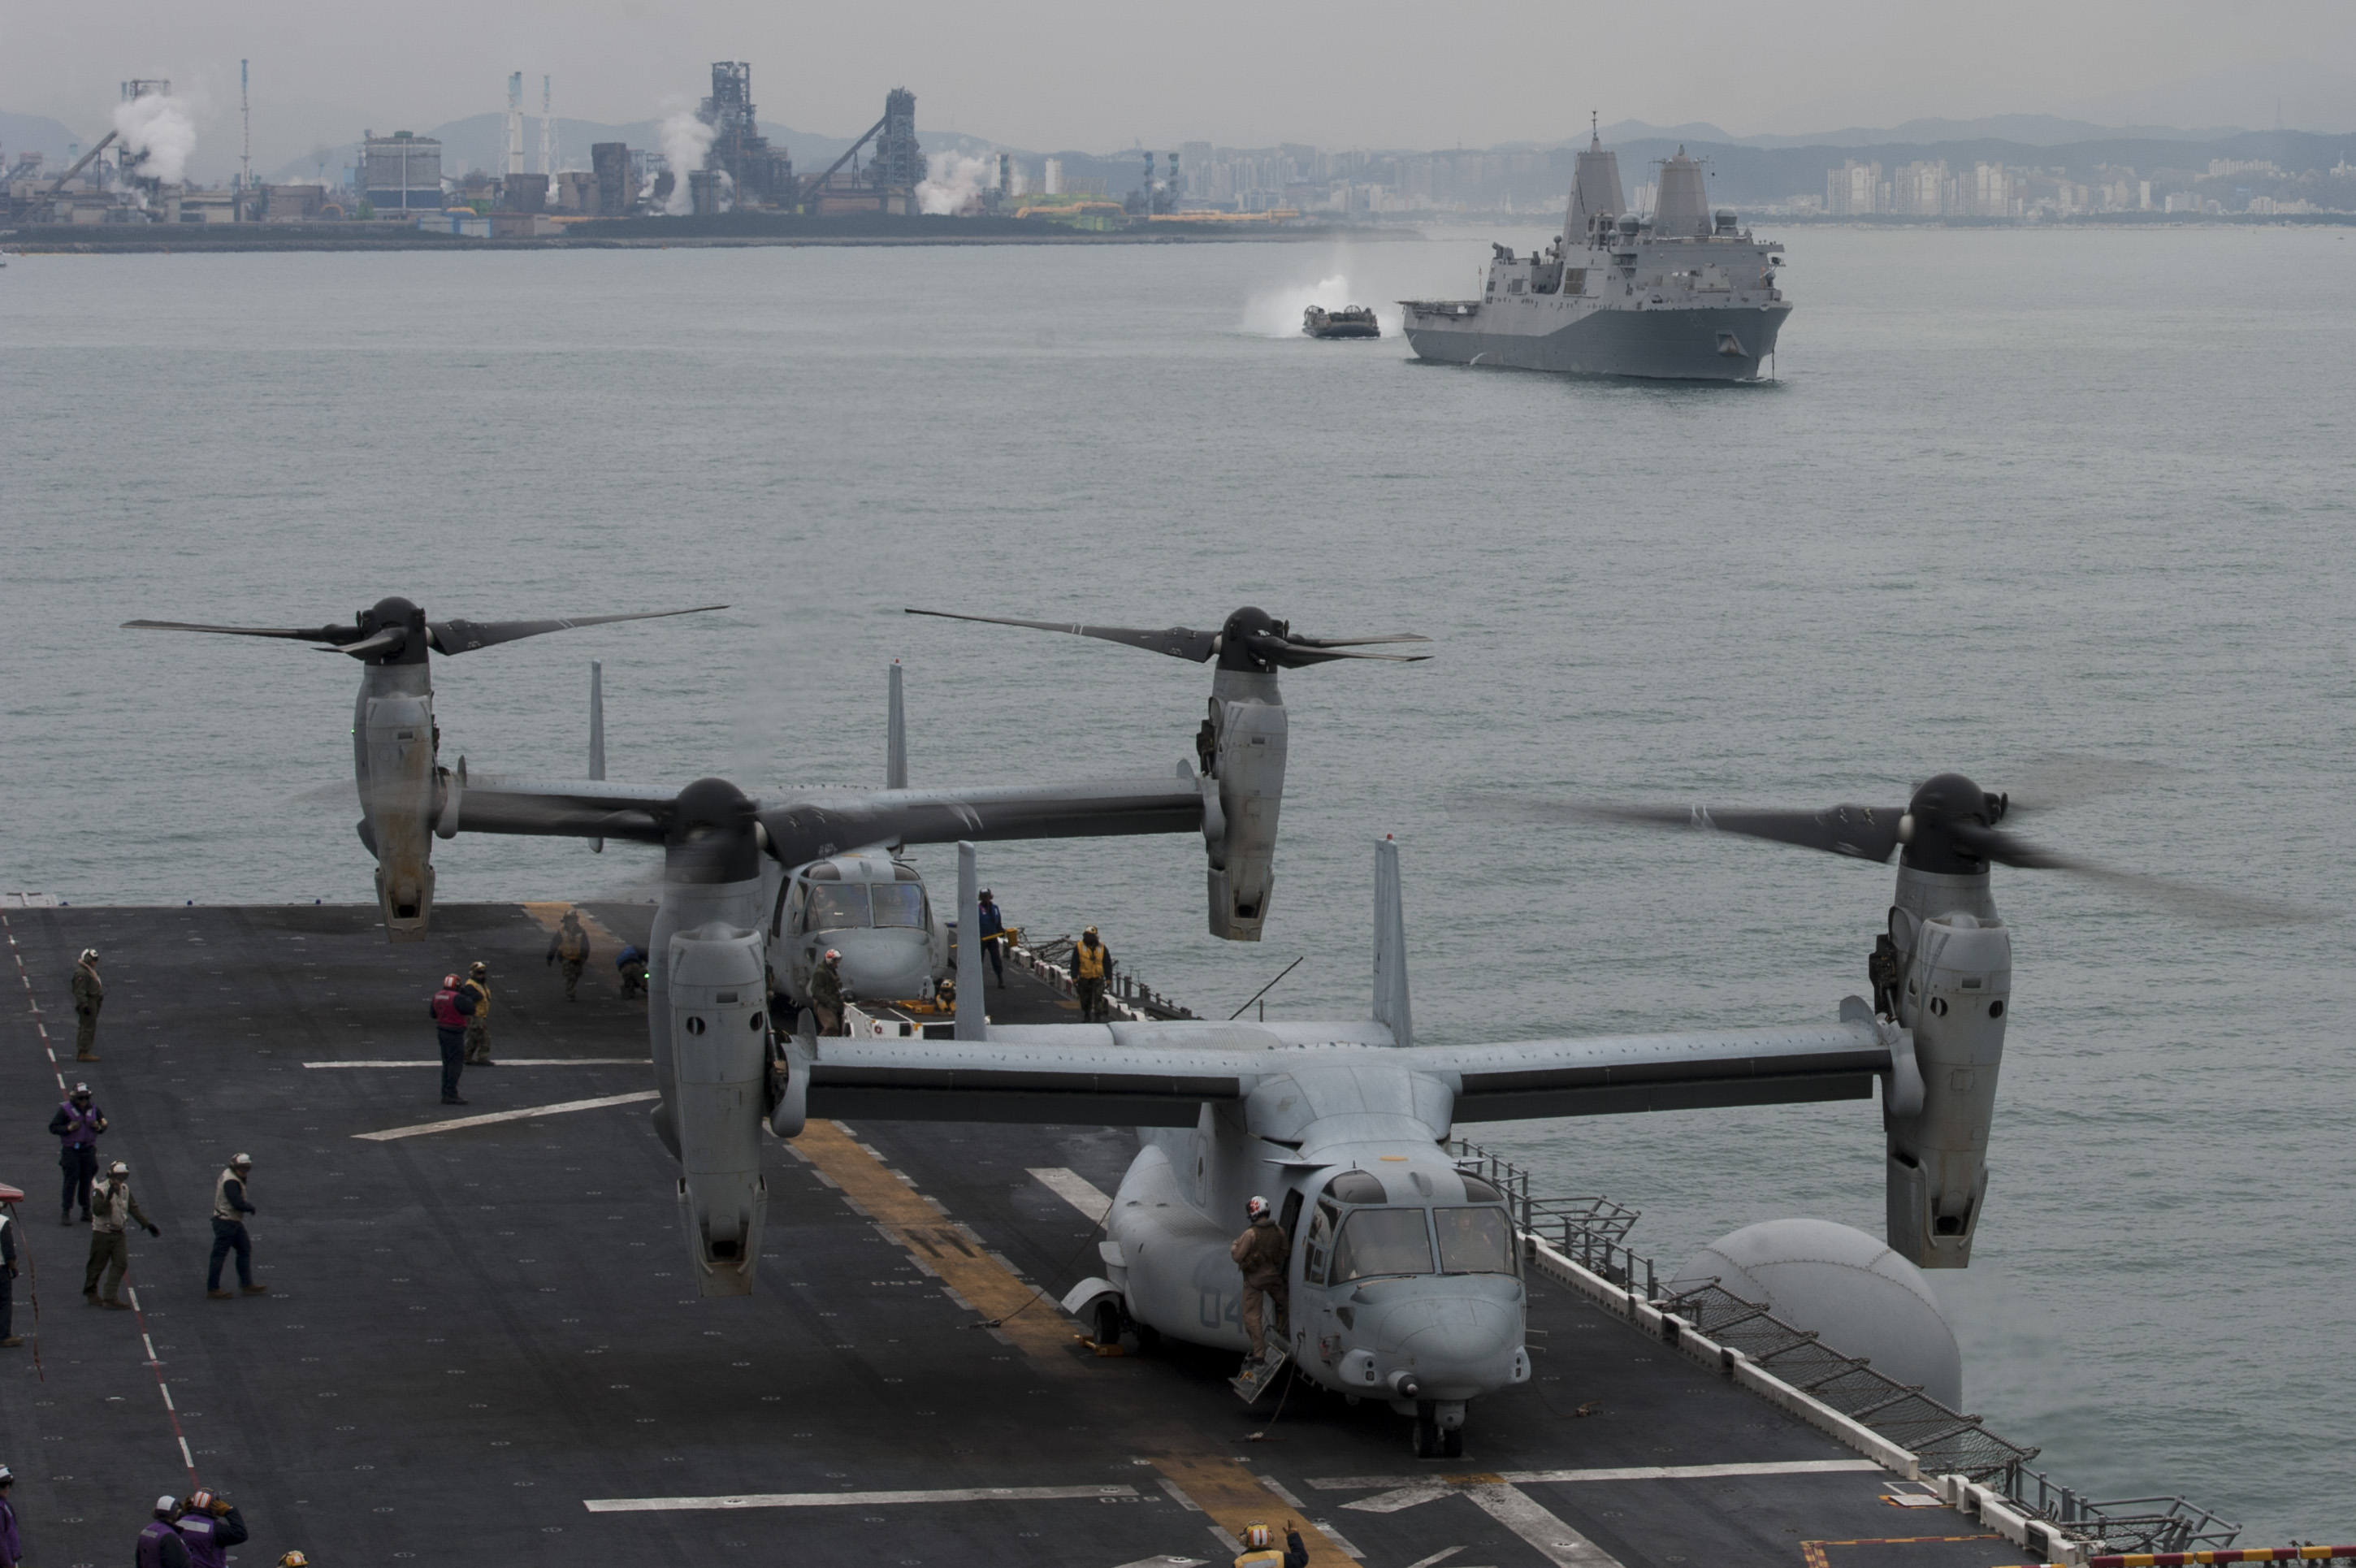 MV-22 Osprey tilt rotor aircraft prepare to take off from the flight deck of the amphibious assault ship USS Bonhomme Richard (LHD 6), while in the background an landing craft air cushion (LCAC) approaches the amphibious transport dock ship USS Green Bay (LPD 20) in April 2015. US Navy photo.